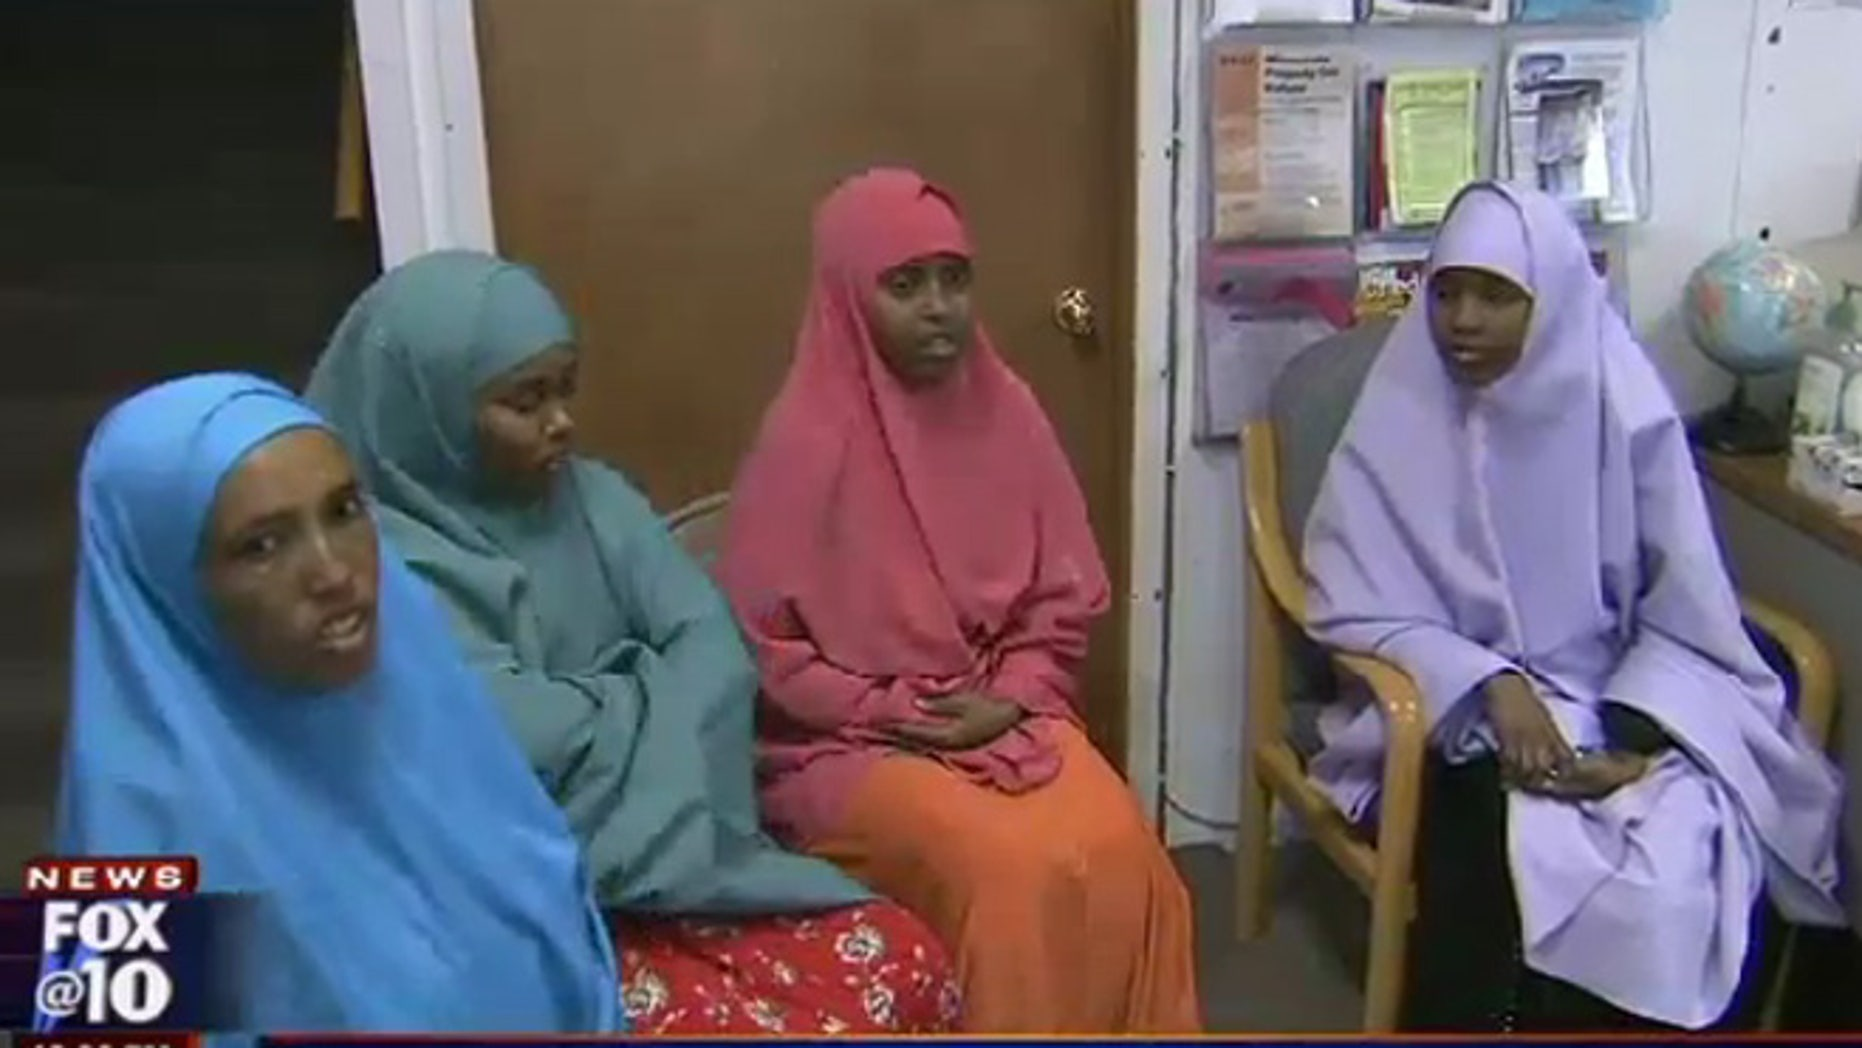 Somali employees walked out of a bakery plant after refusing new dress code implemented after accident.